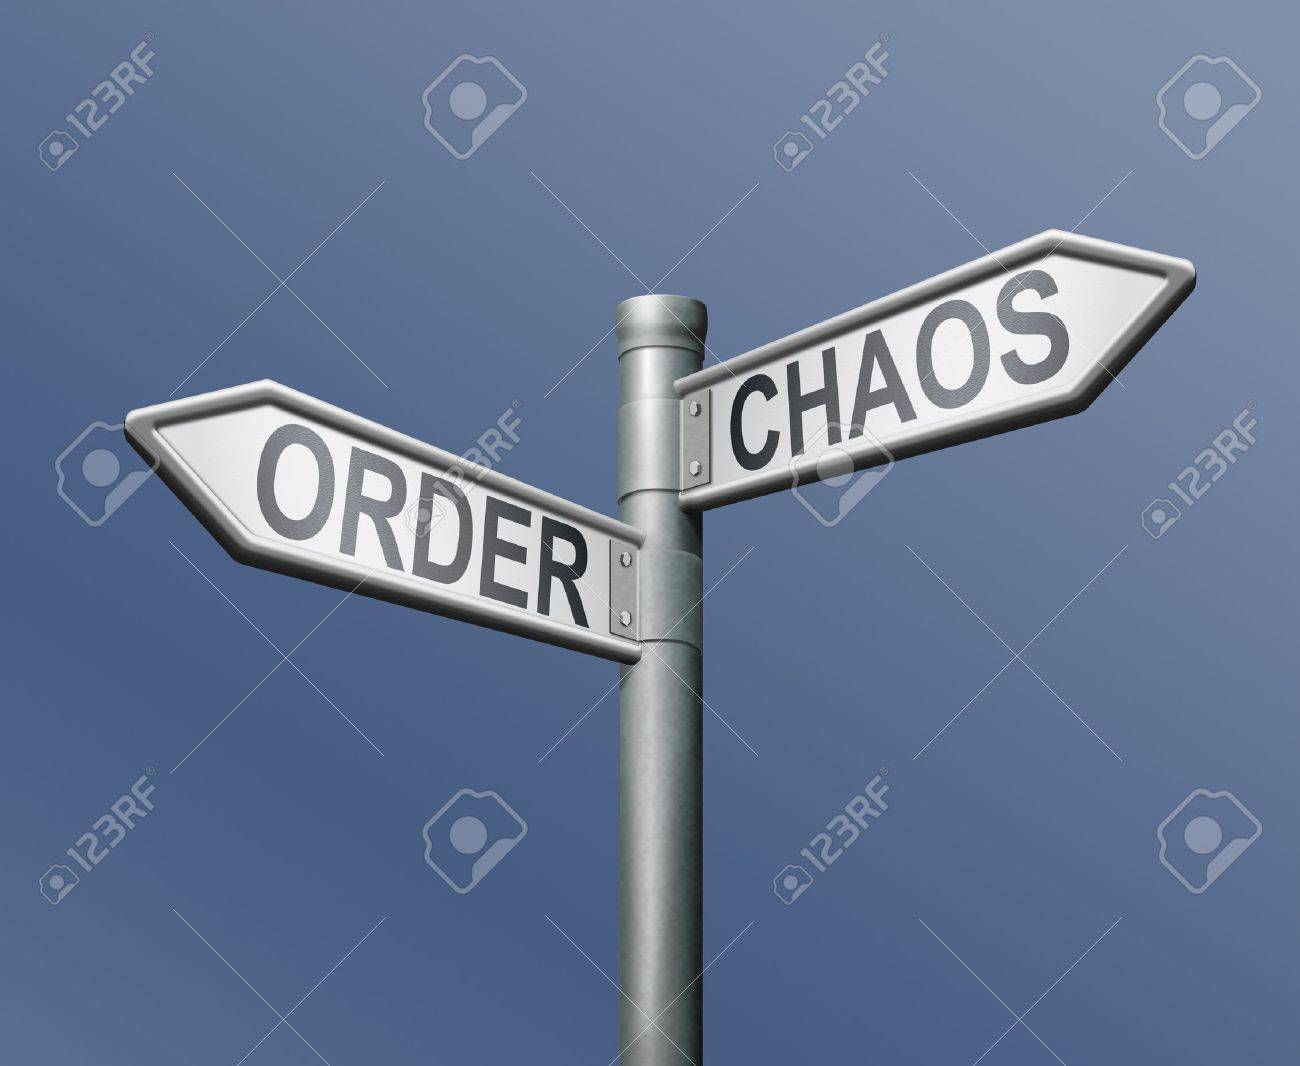 chaos order road sign on blue background Stock Photo - 8363724